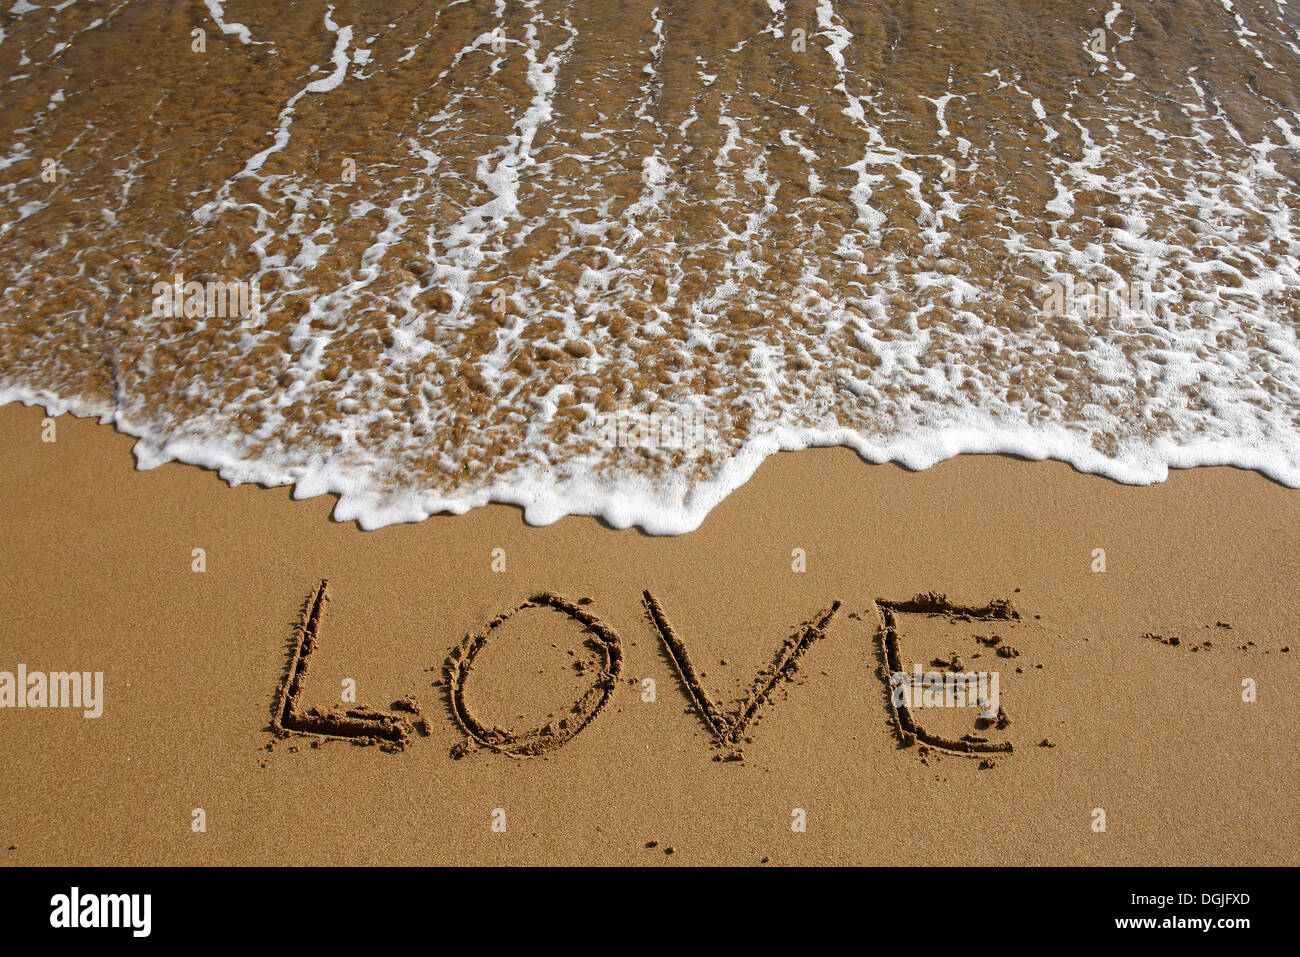 'Love' written in the sand on the beach - Stock Image